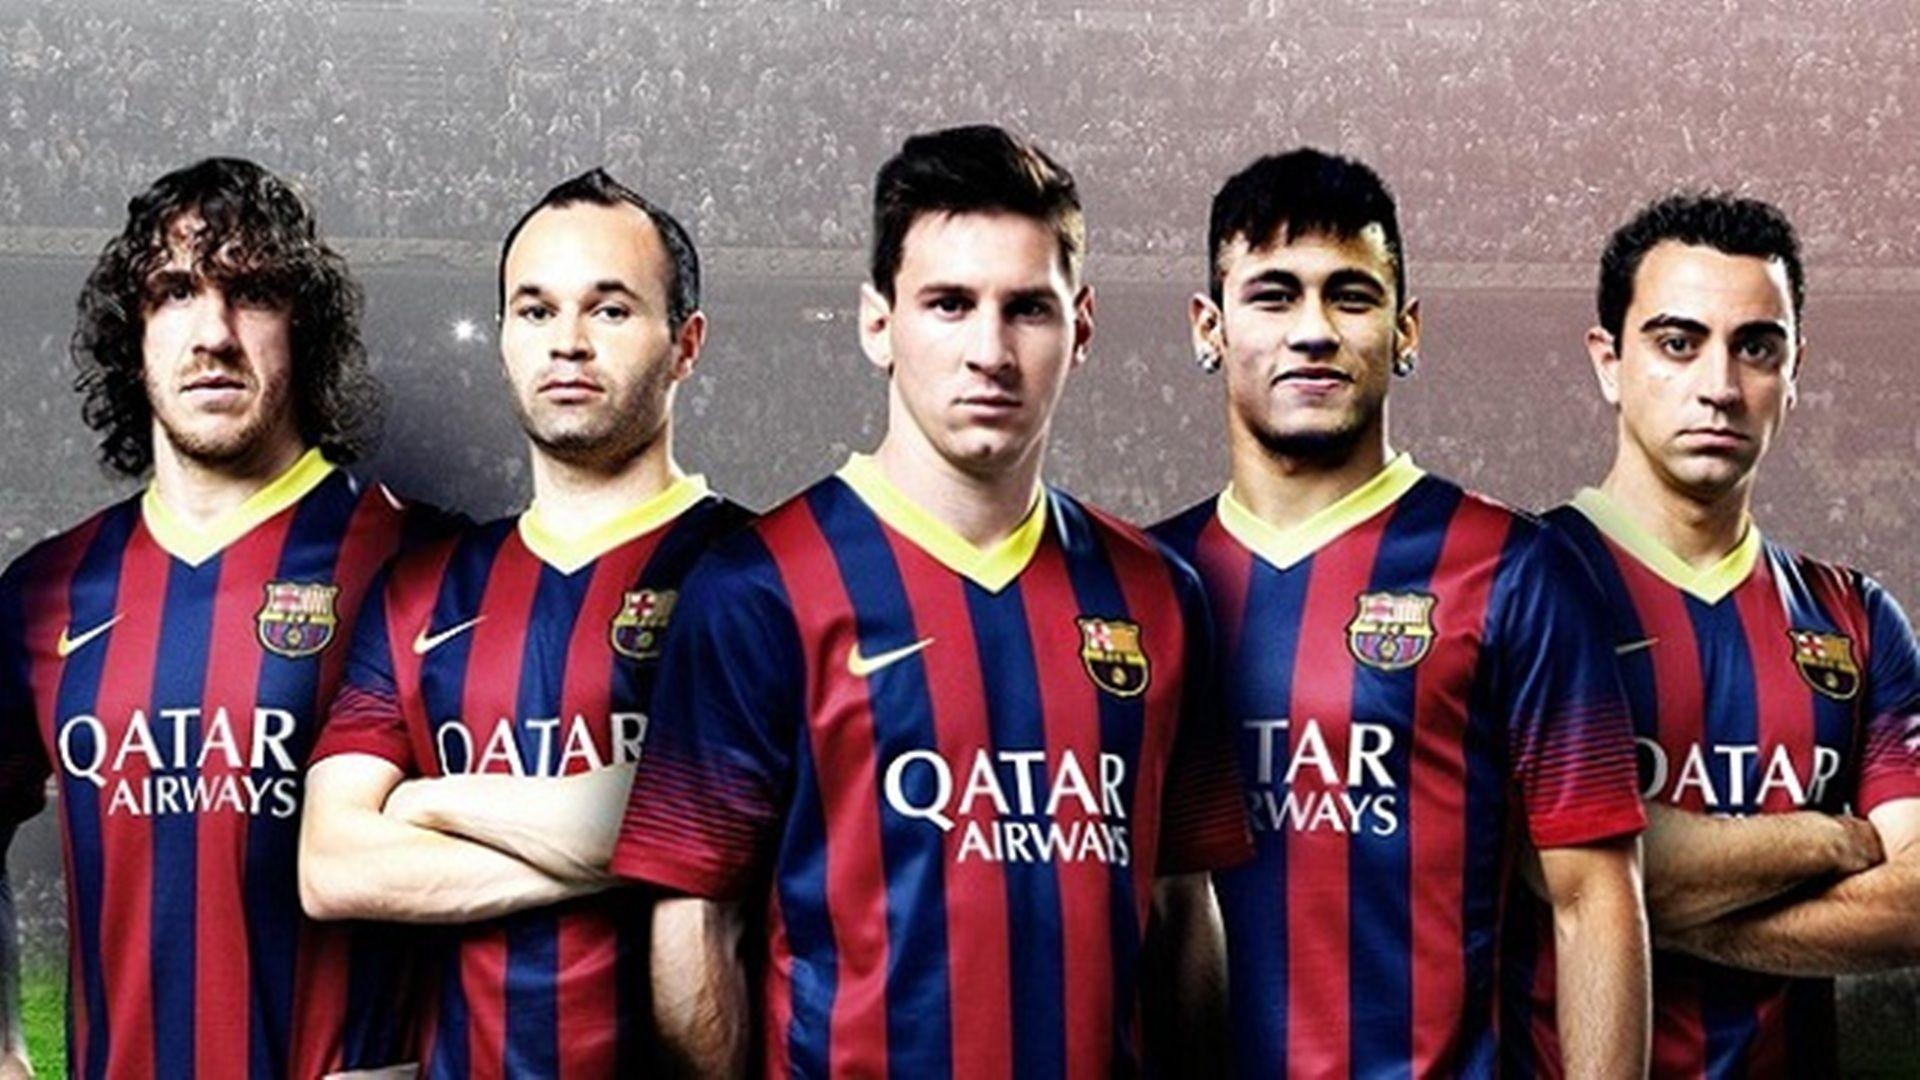 Barcelona Squad Wallpapers